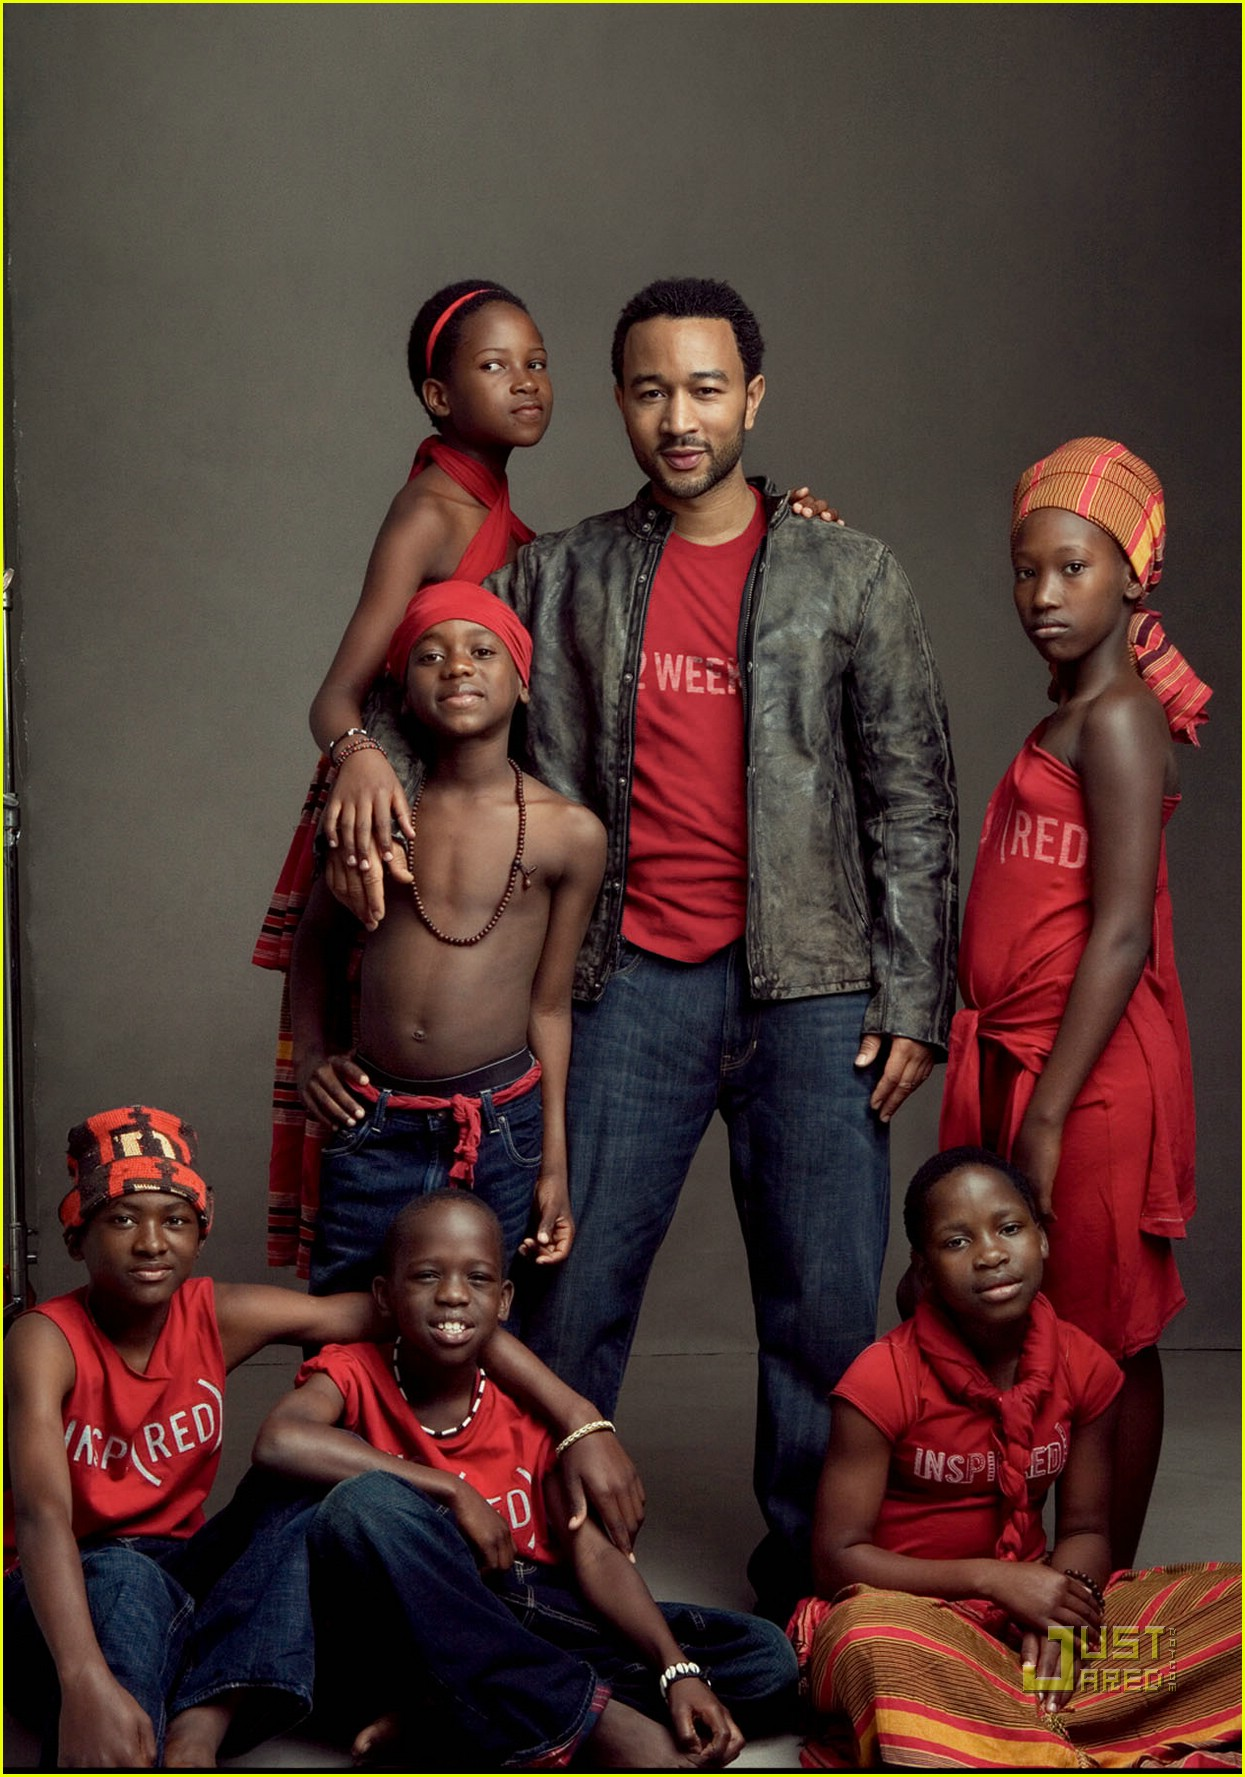 John Legend photo #51139